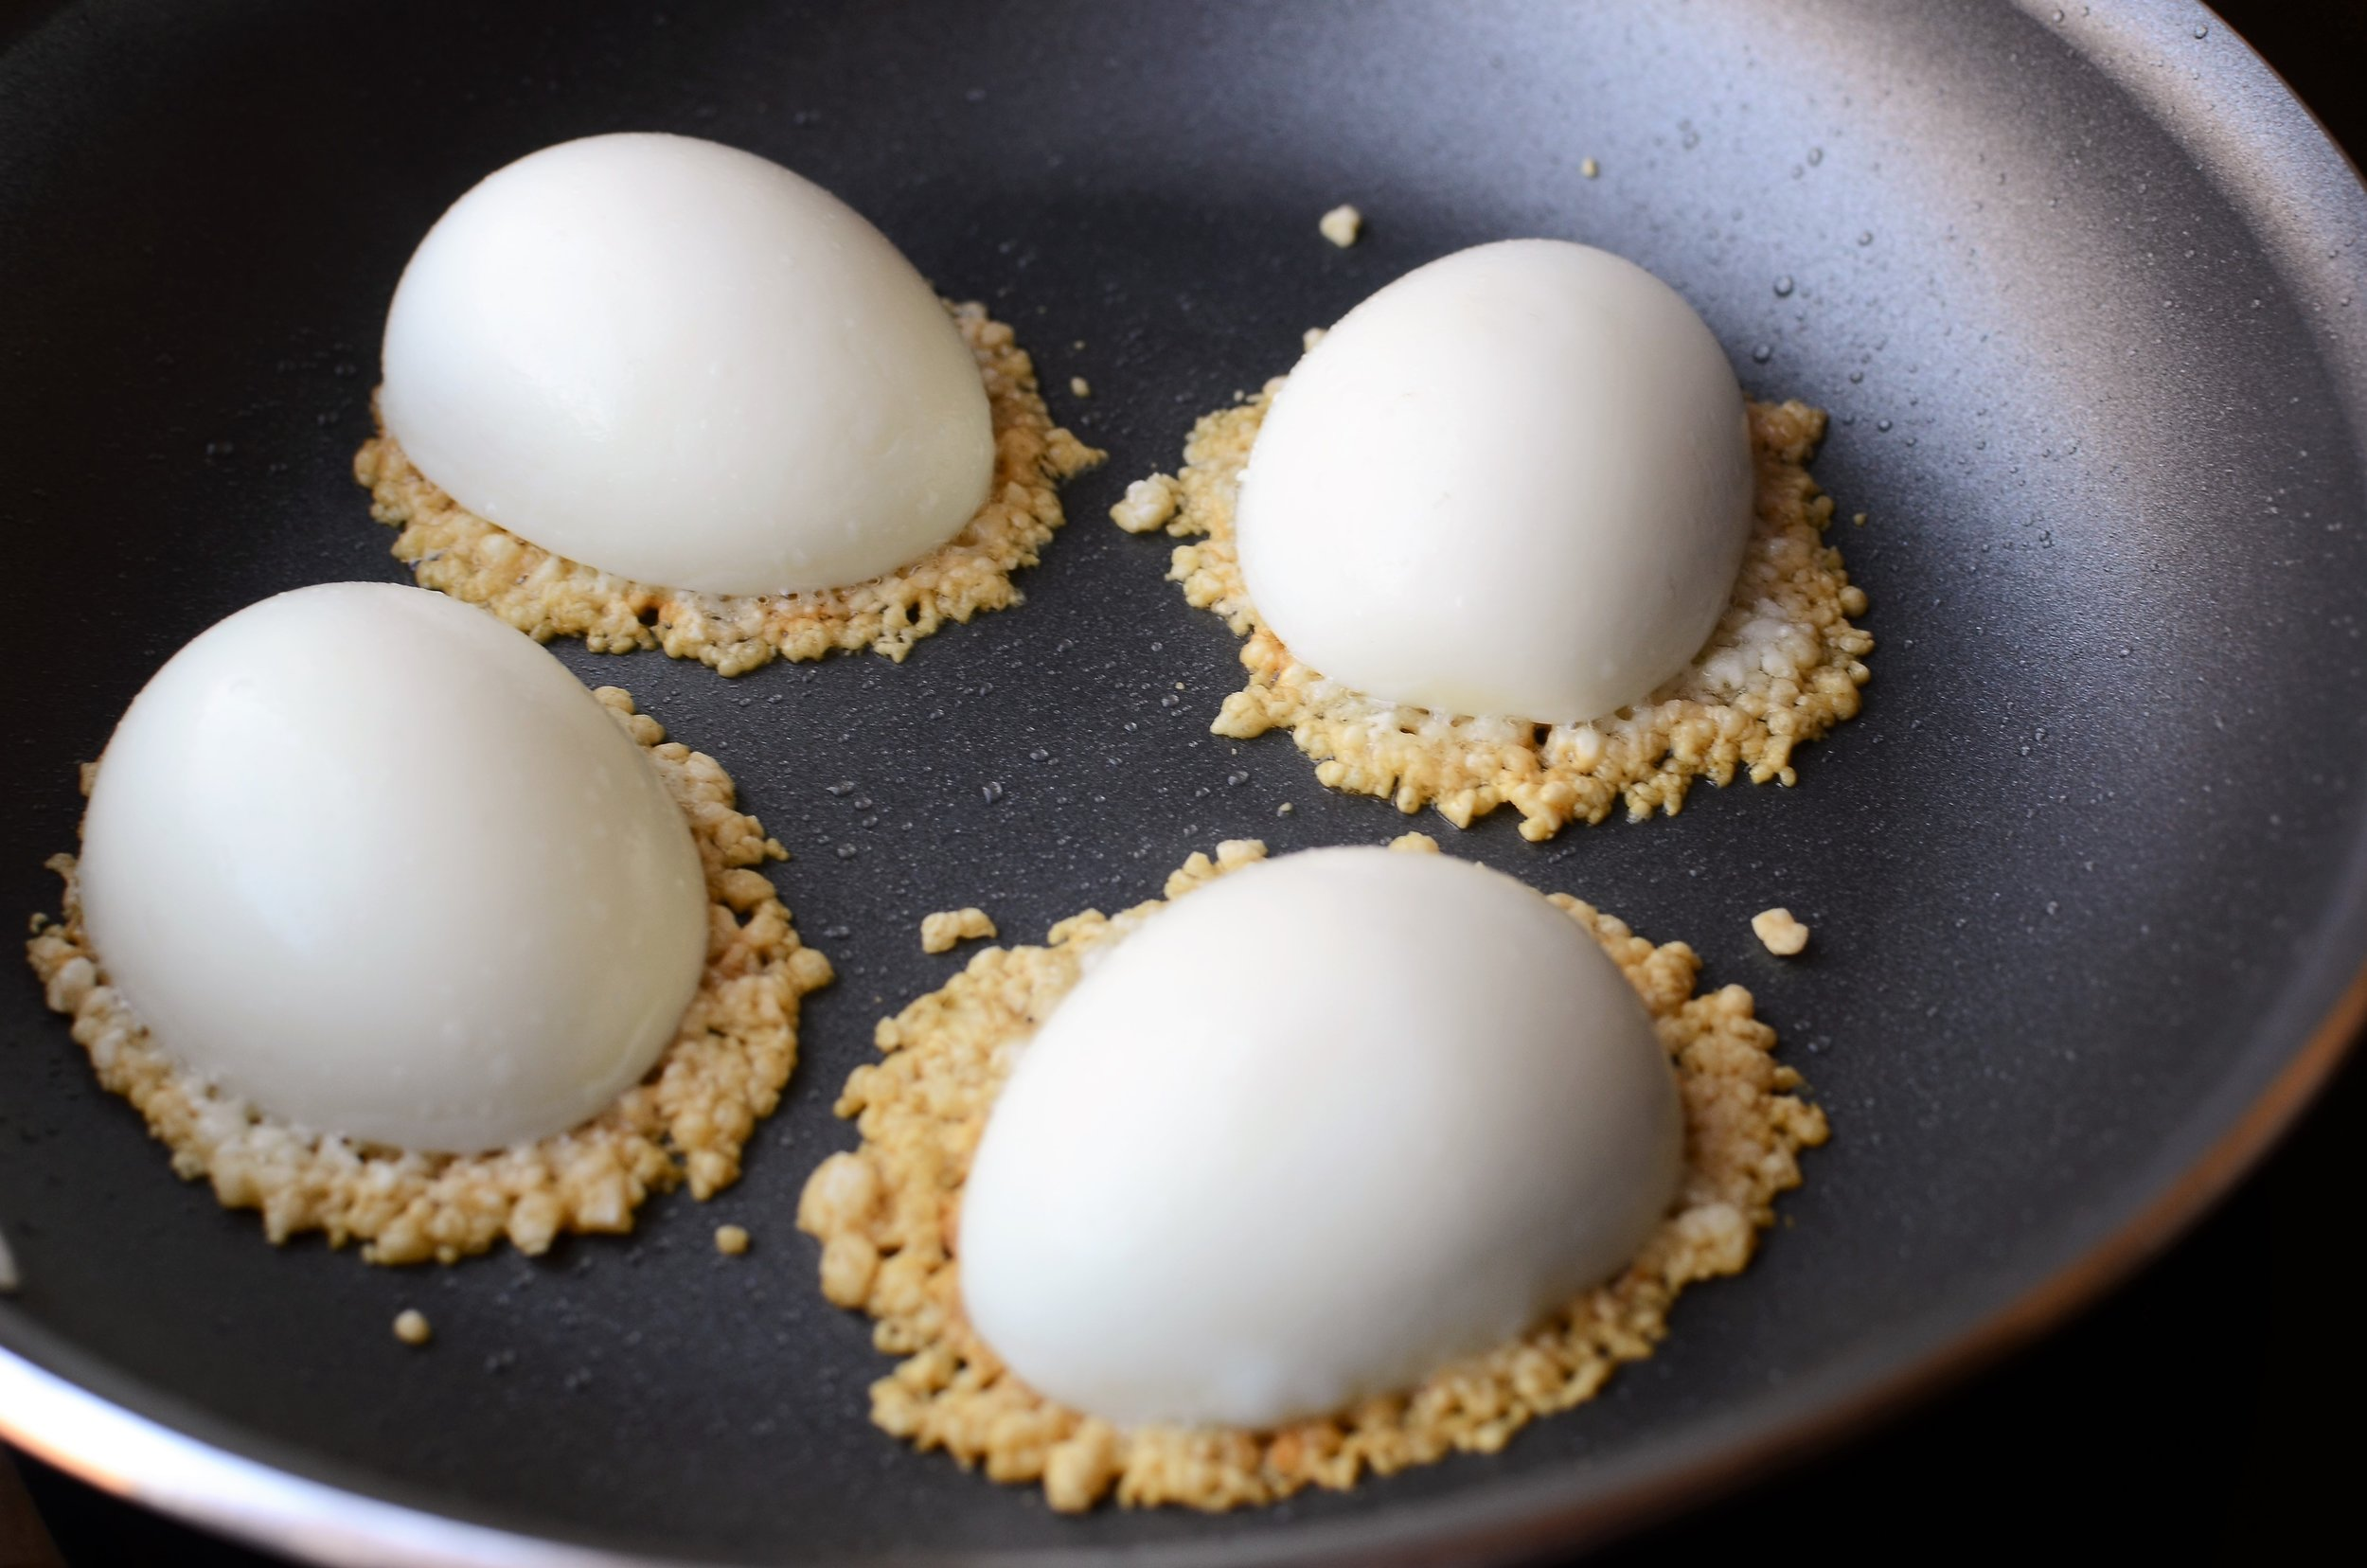 ButterYum - Top 10 Recipes of 2018 - #7    Frico Eggs